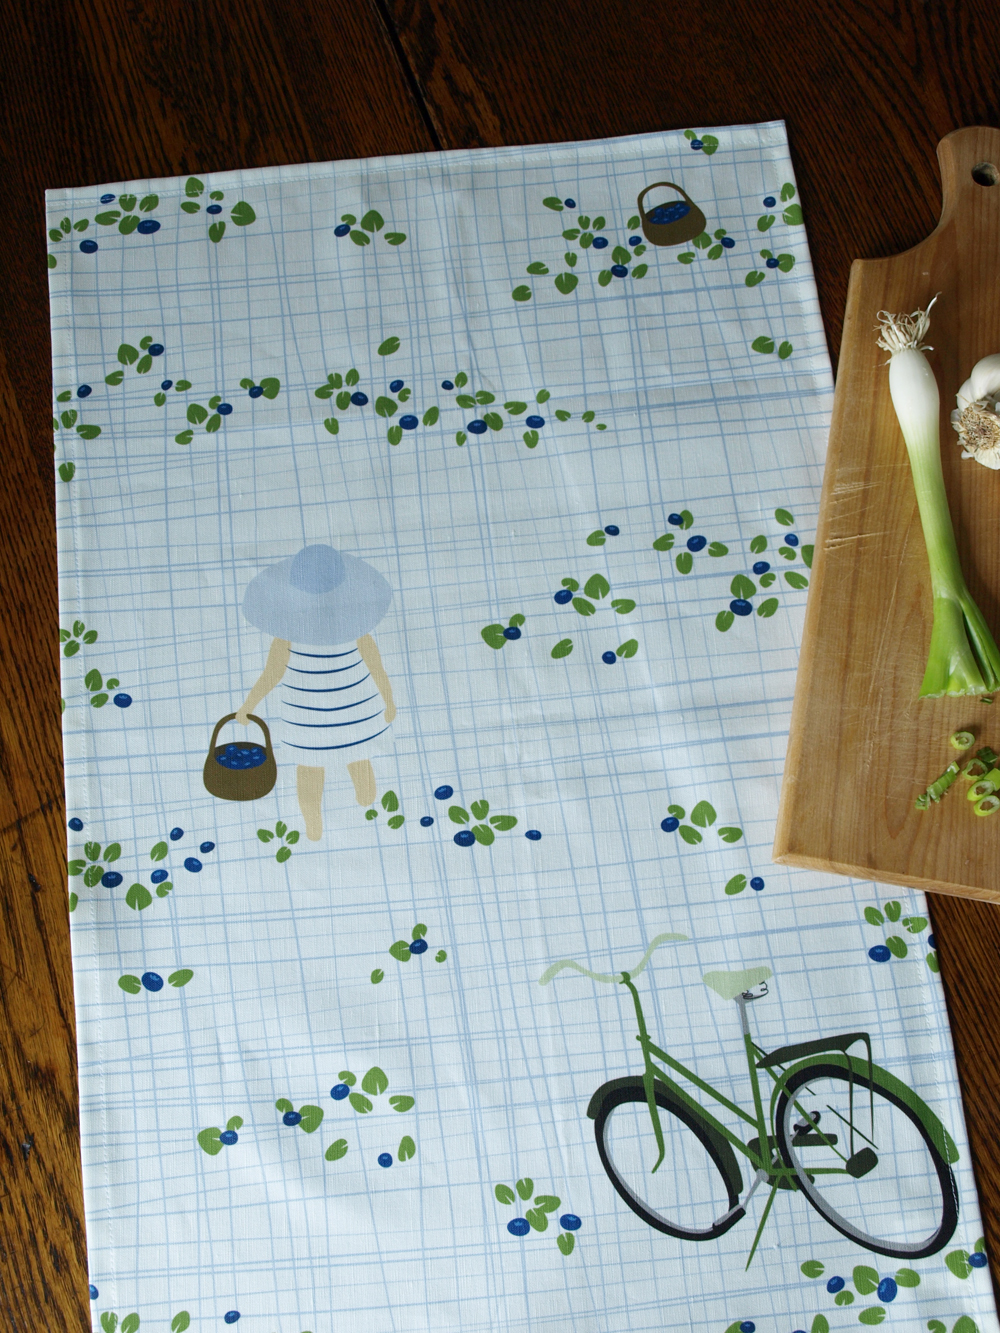 Get ready for Blueberry season with a Blueberry-picking tea towel!